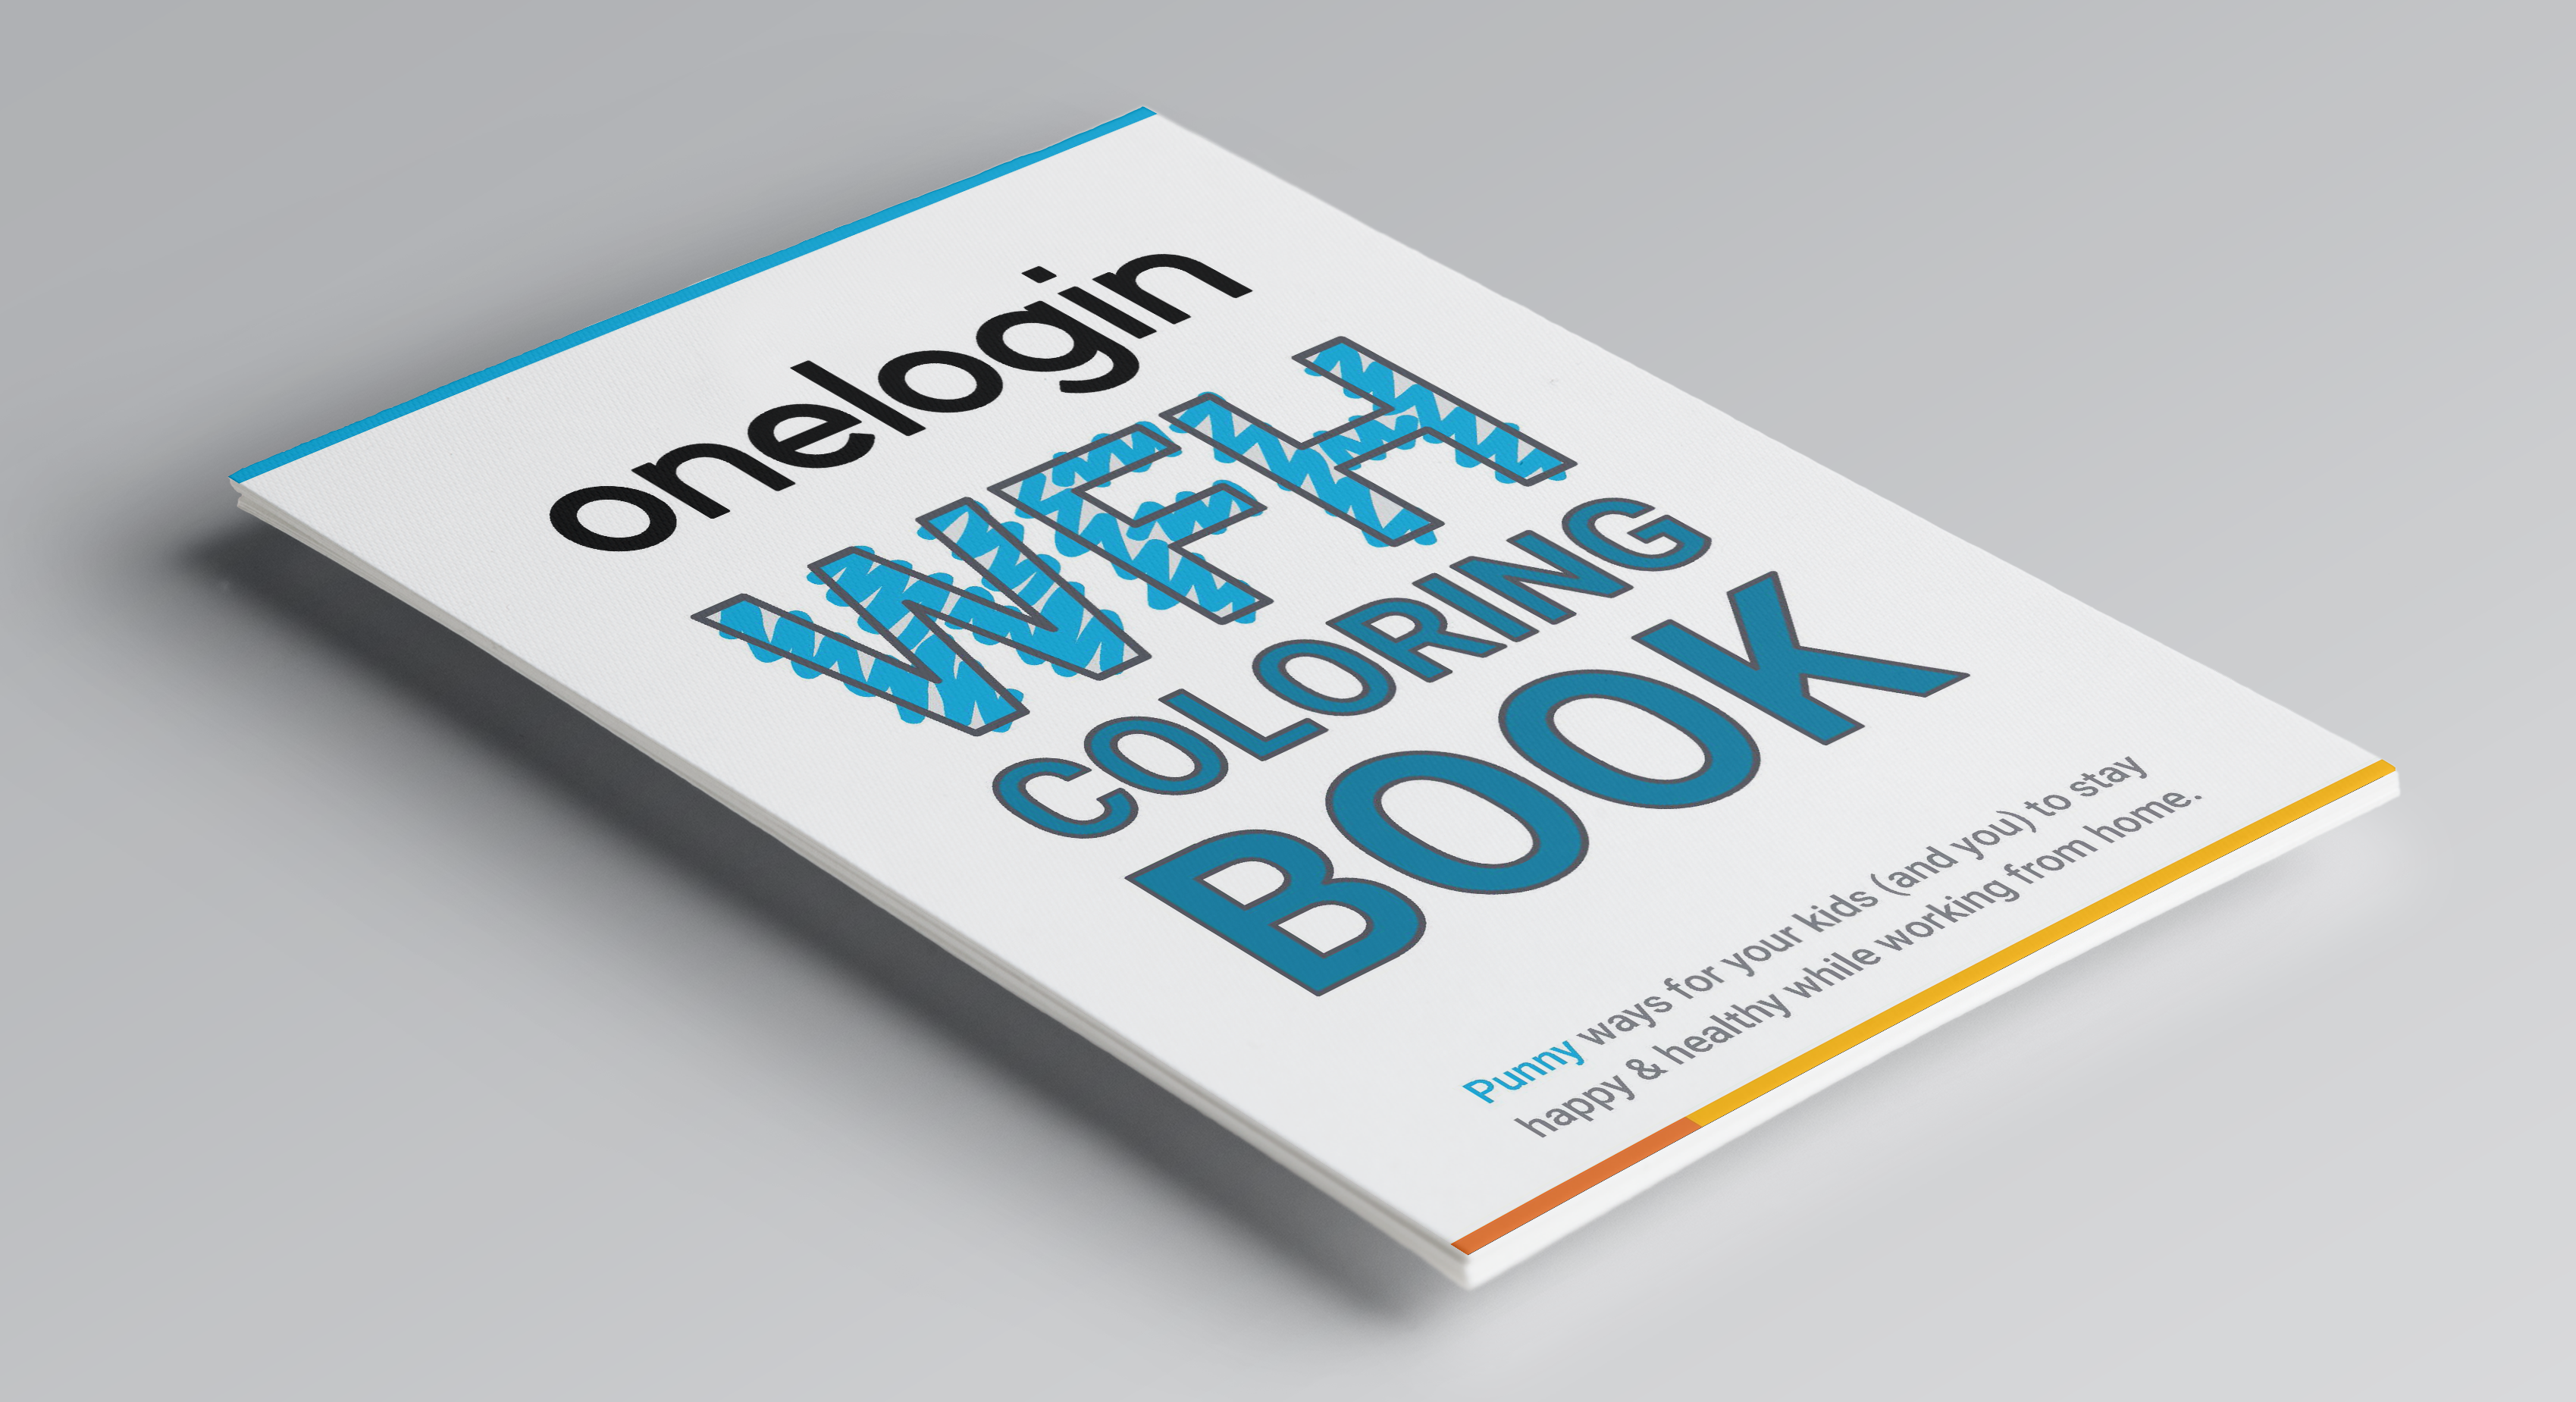 The OneLogin Work From Home Coloring Book: Punny Ways to Stay Happy and Healthy While WFH